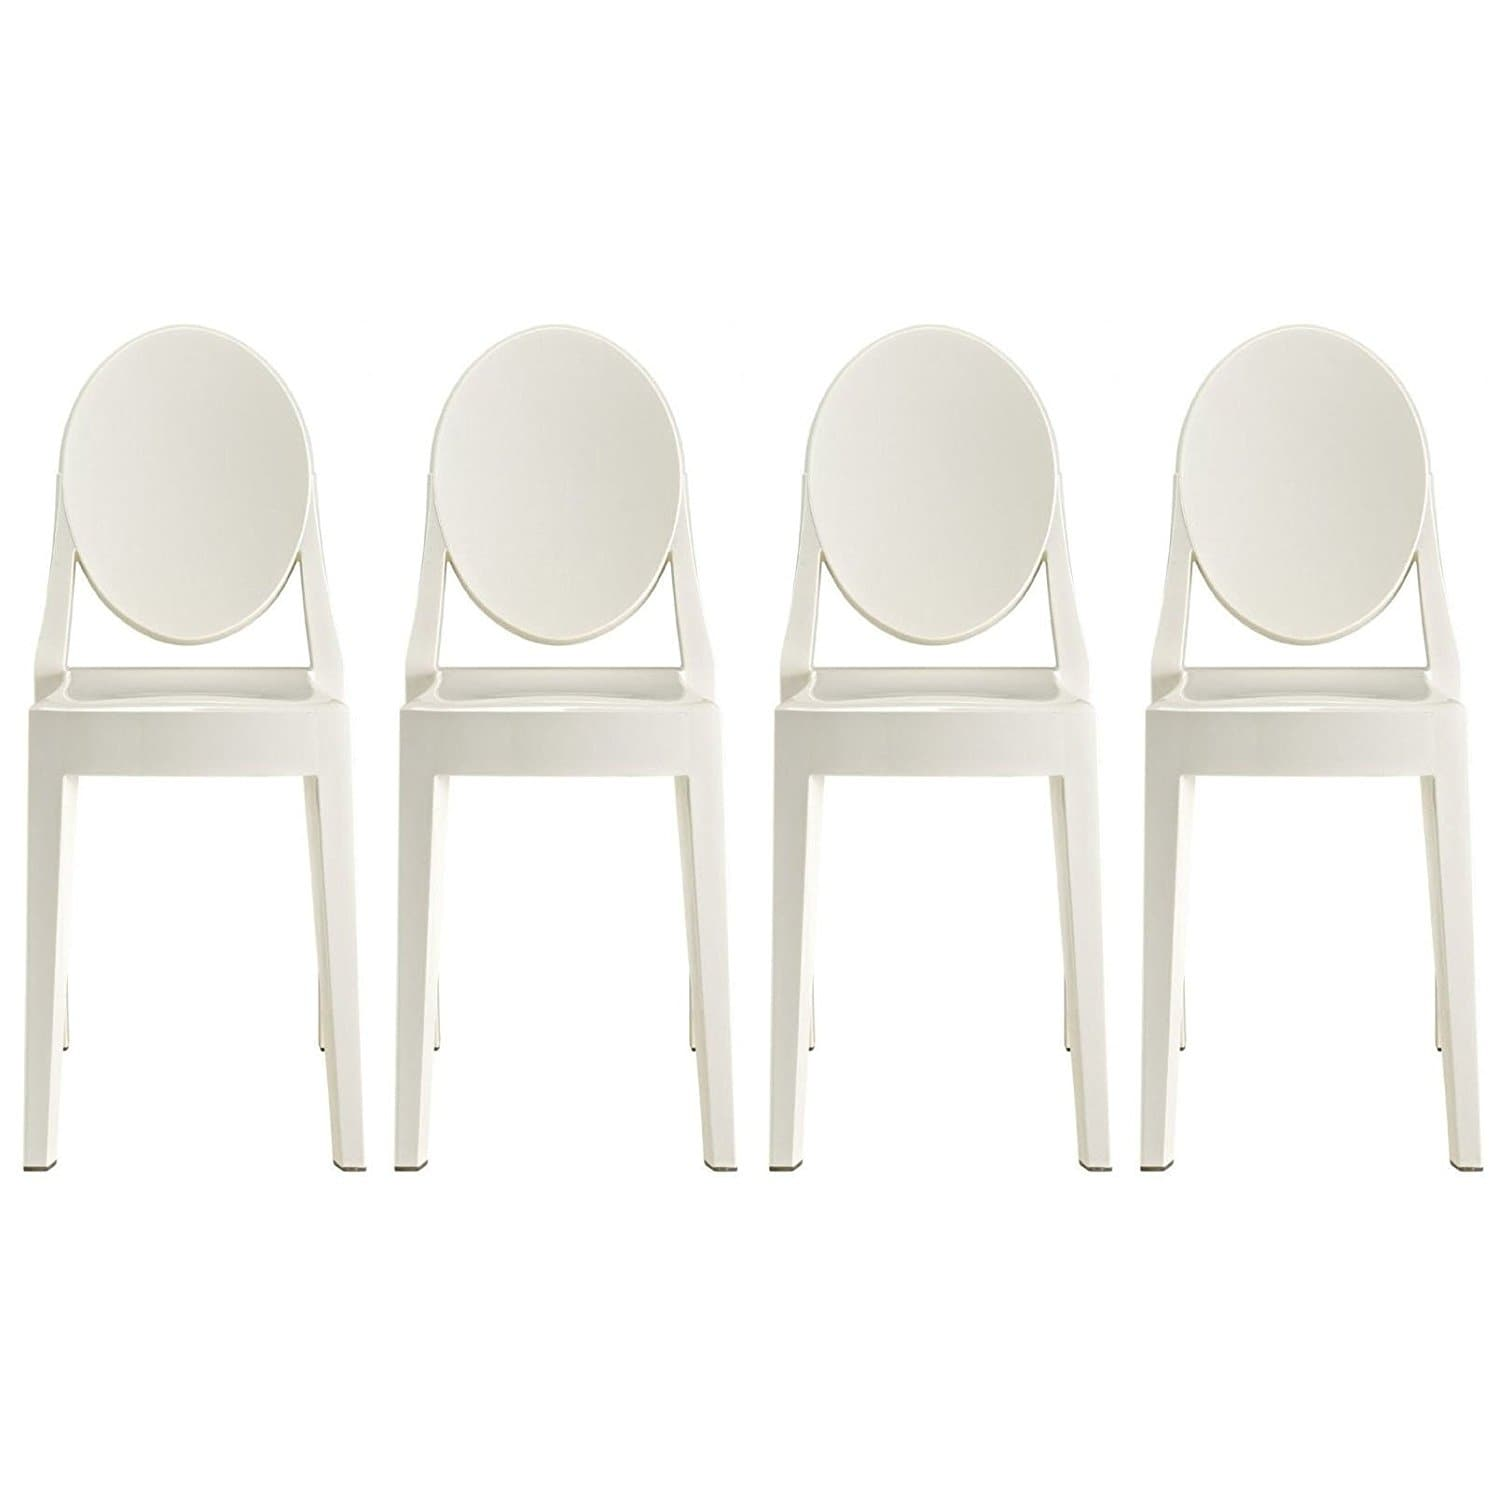 white plastic dining chairs slipcovers for shop 2xhome set of 4 standard size modern